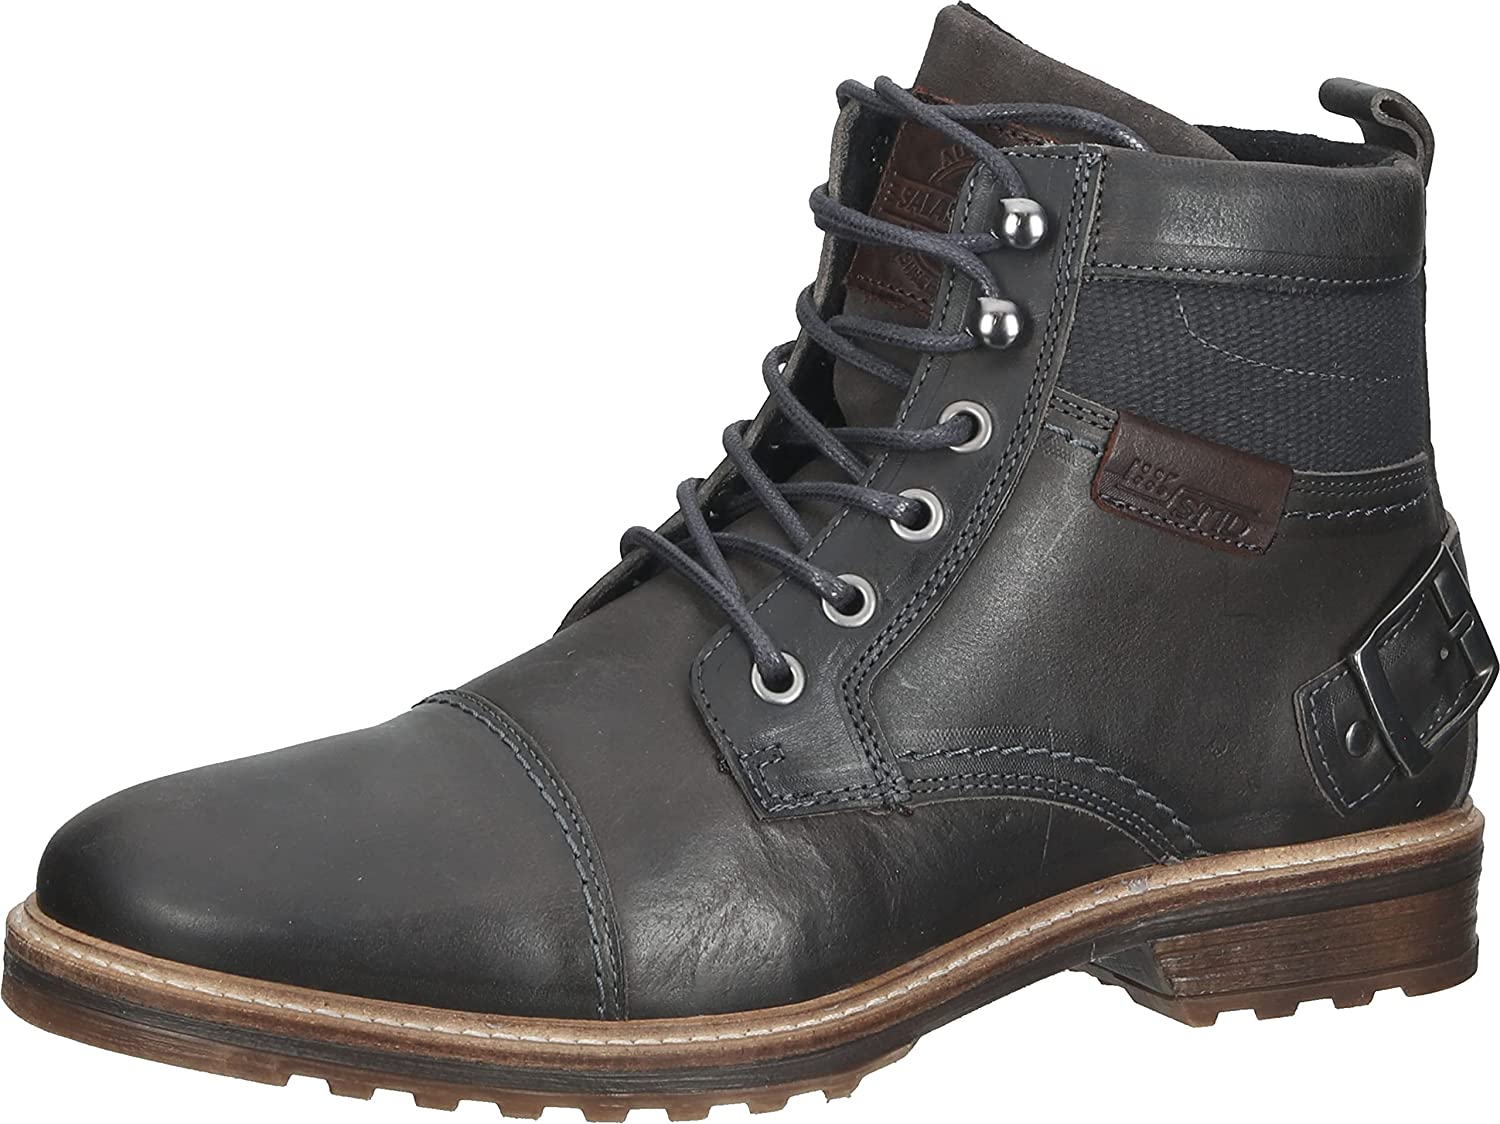 Salamander cheap Men's Winter Boot New product type Ankle